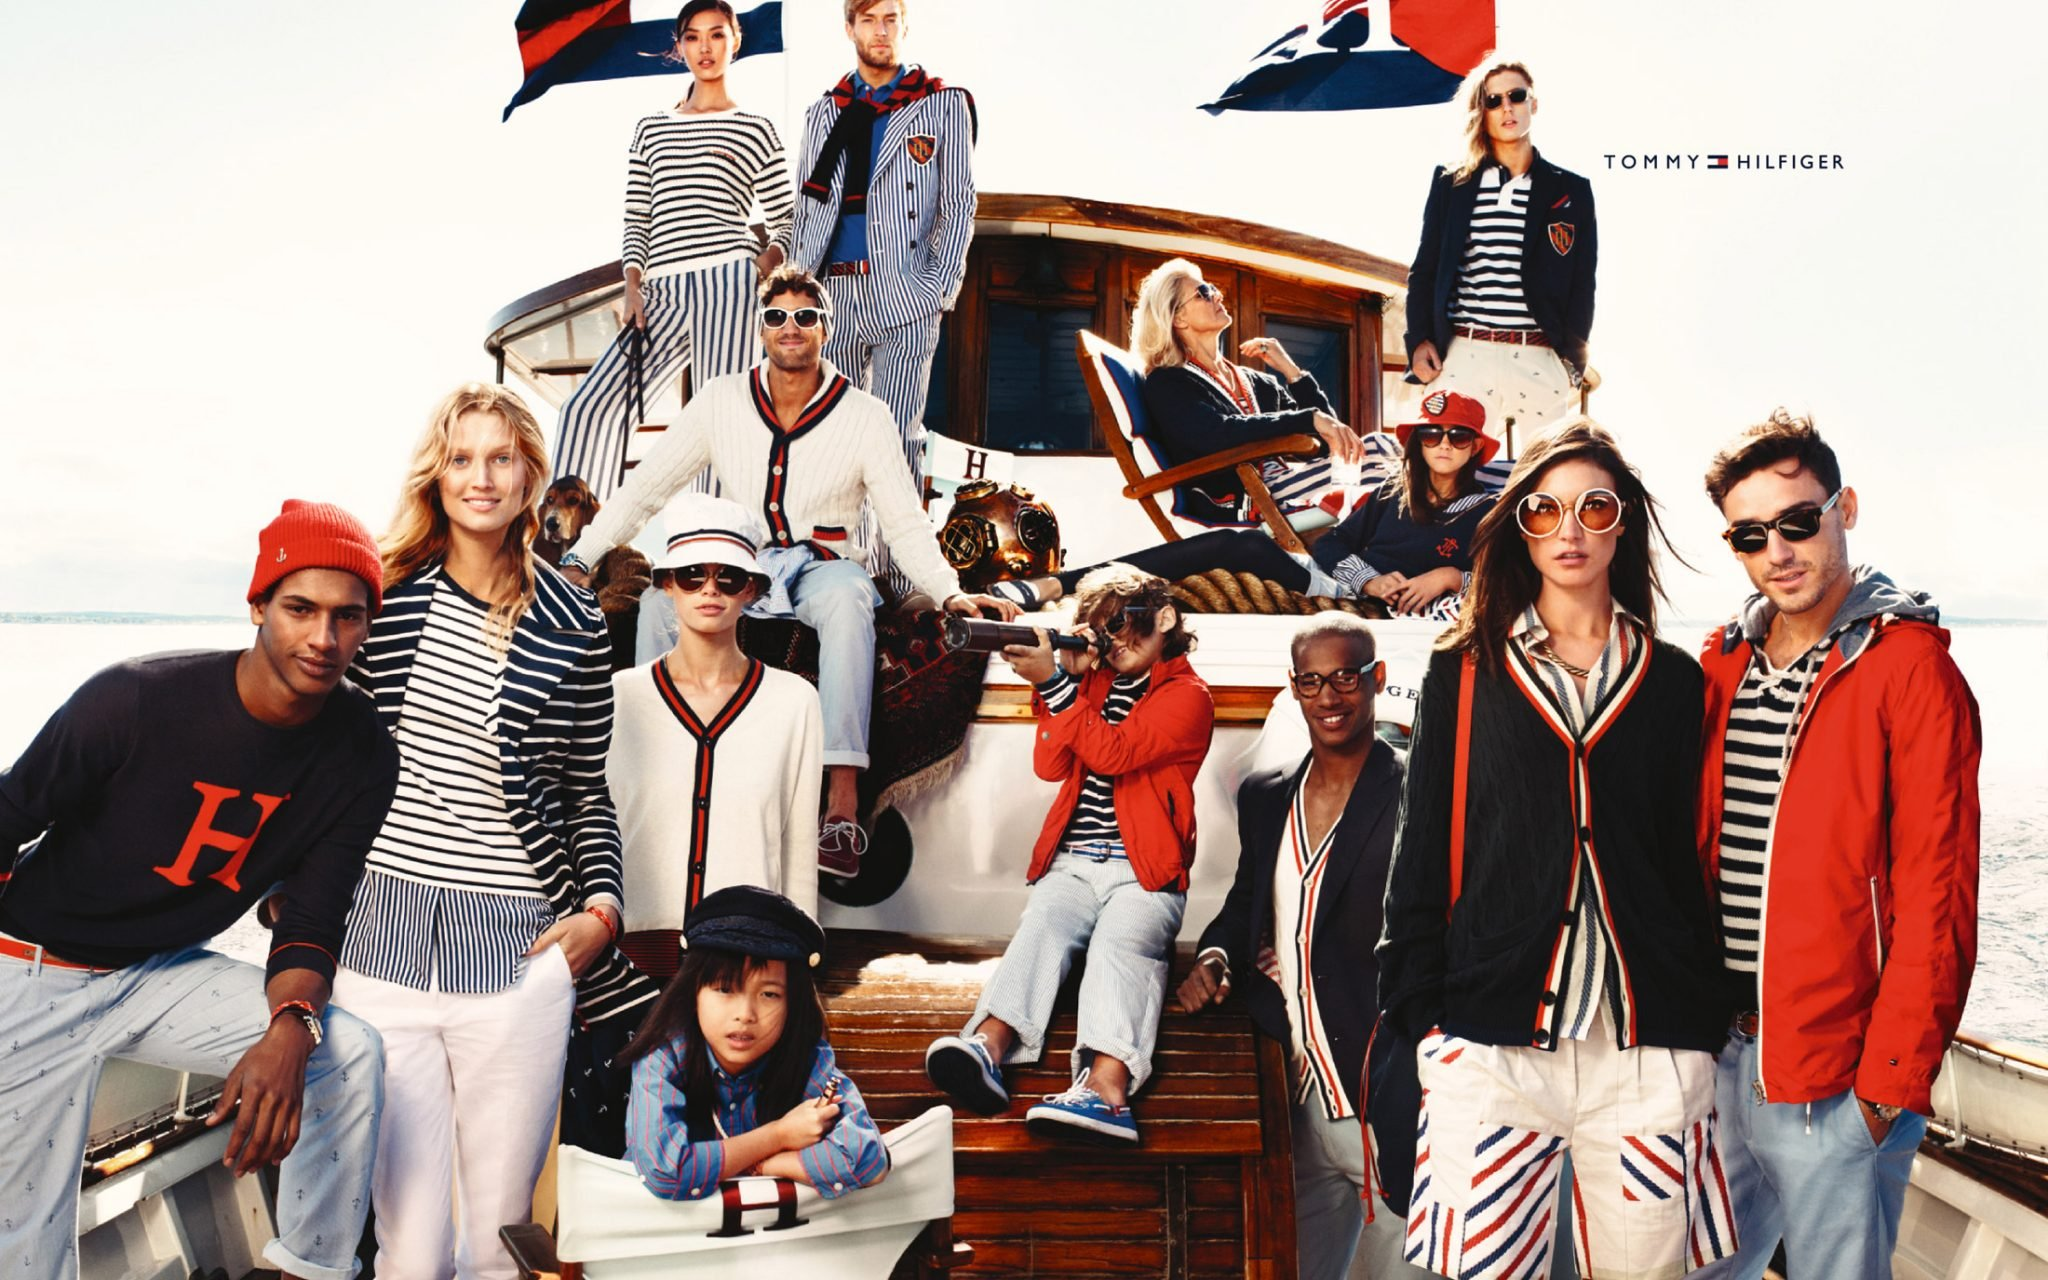 Latest Watches by Tommy Hilfiger